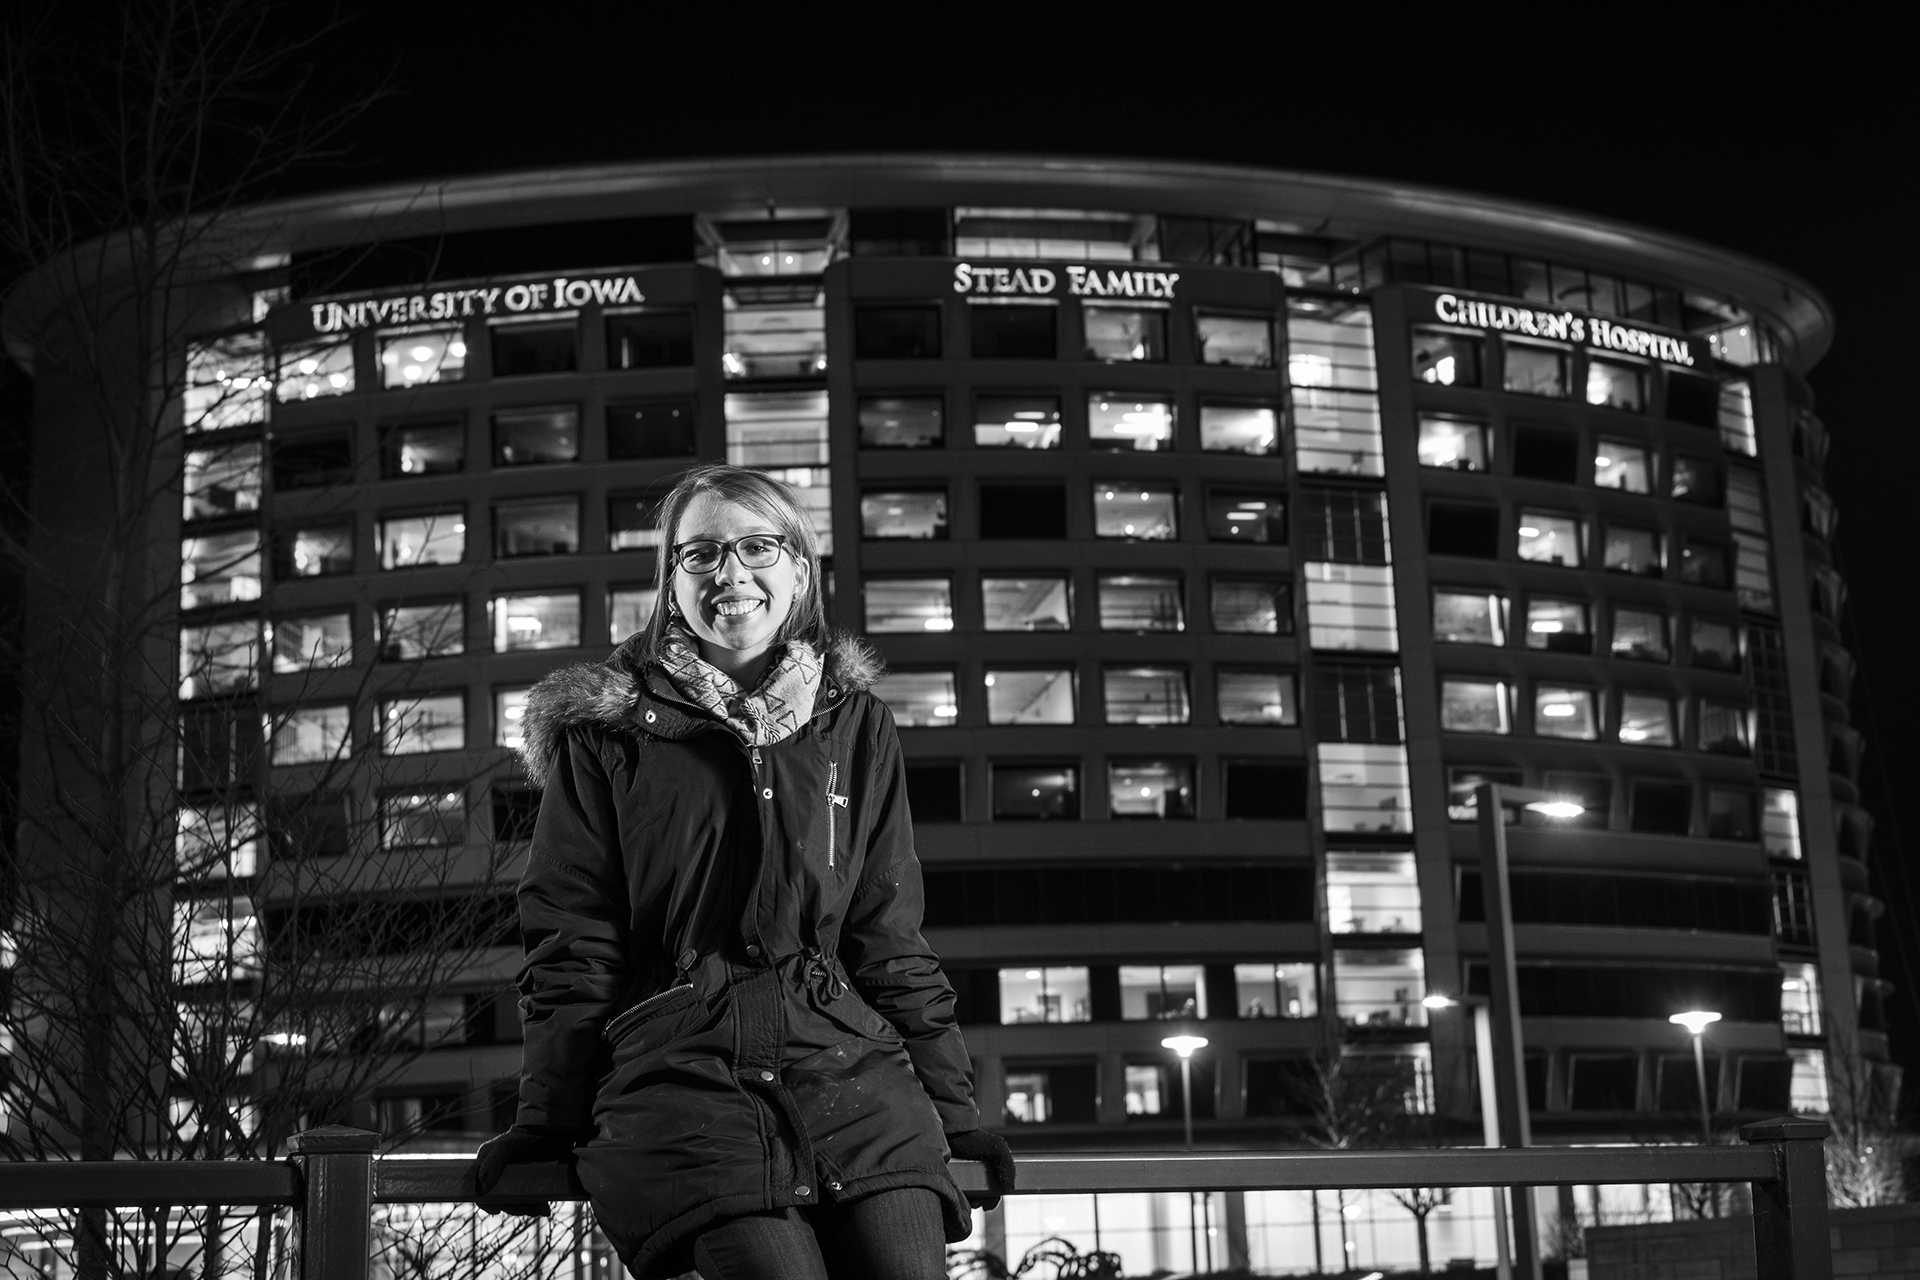 Melissa Trepa, a junior at the University of Iowa, poses for a portrait in front of the Stead Family Children's Hospital on Wednesday, Jan. 31, 2018. Trepa, a survivor of Hodgkin's lymphoma, celebrated her fifth year in remission this past October. She is participating in the UI Dance Marathon for the third year in a row, this weekend. (Matthew Finley/The Daily Iowan)